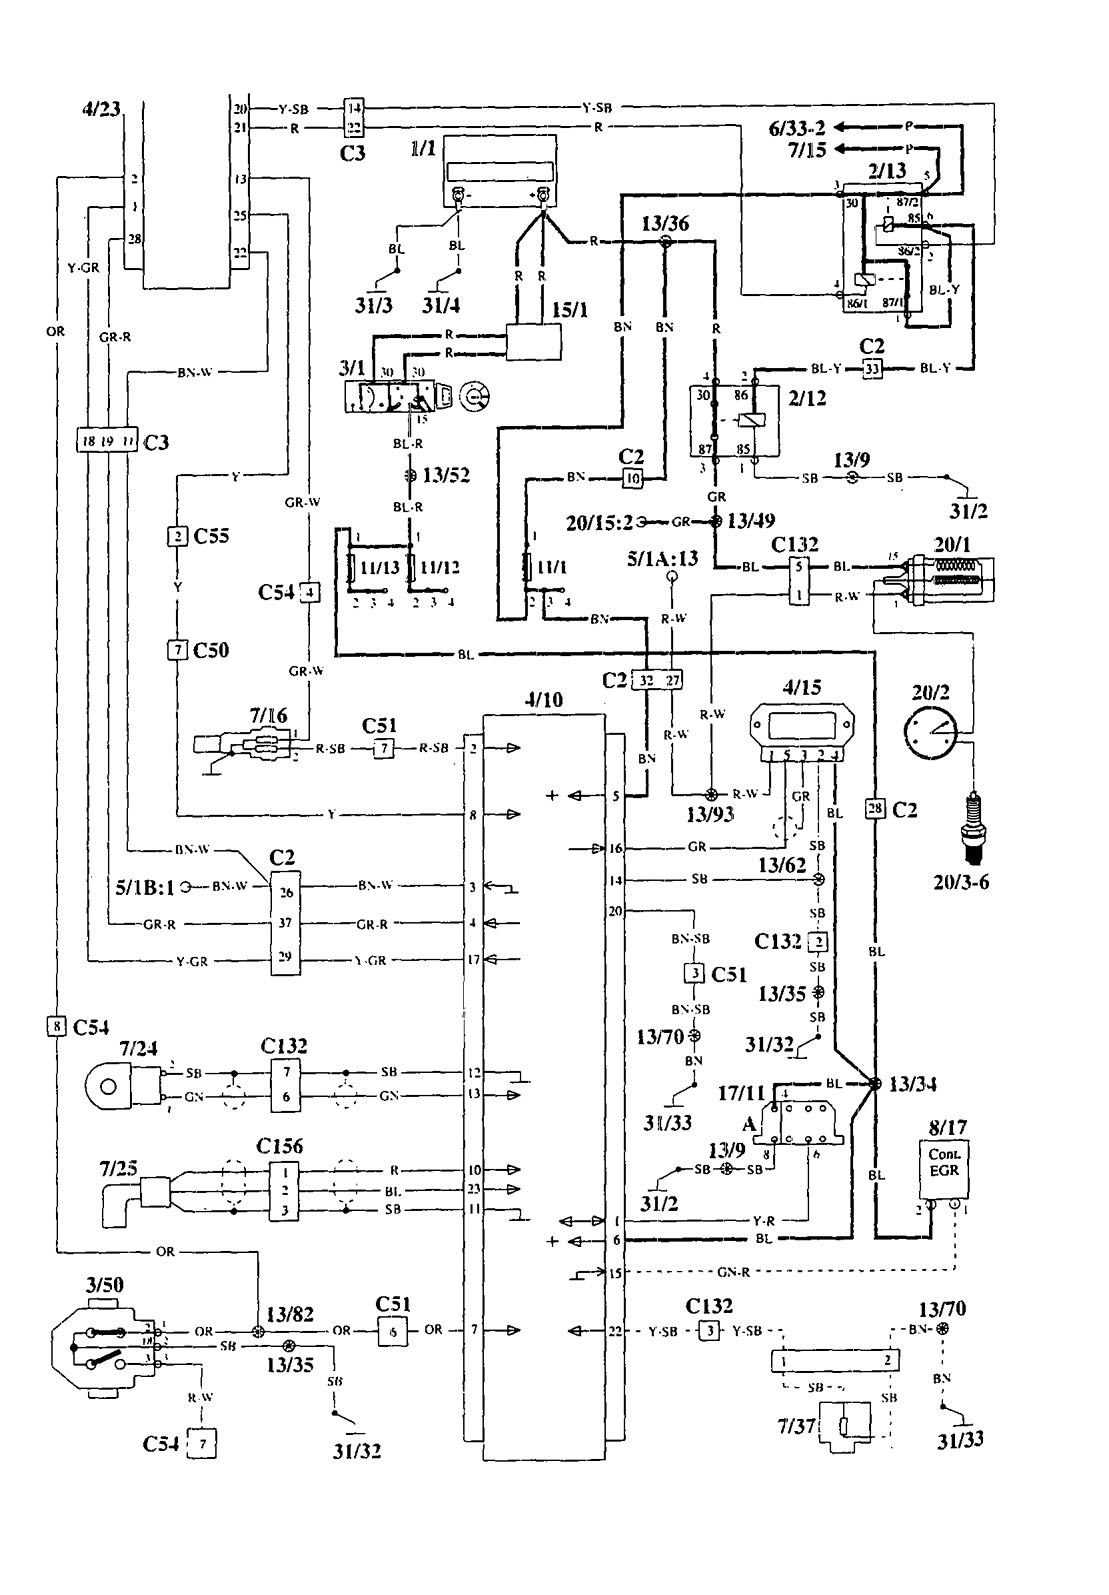 Volvo Wiring Diagram Ignition on 1992 Acura Integra Wiring Diagram